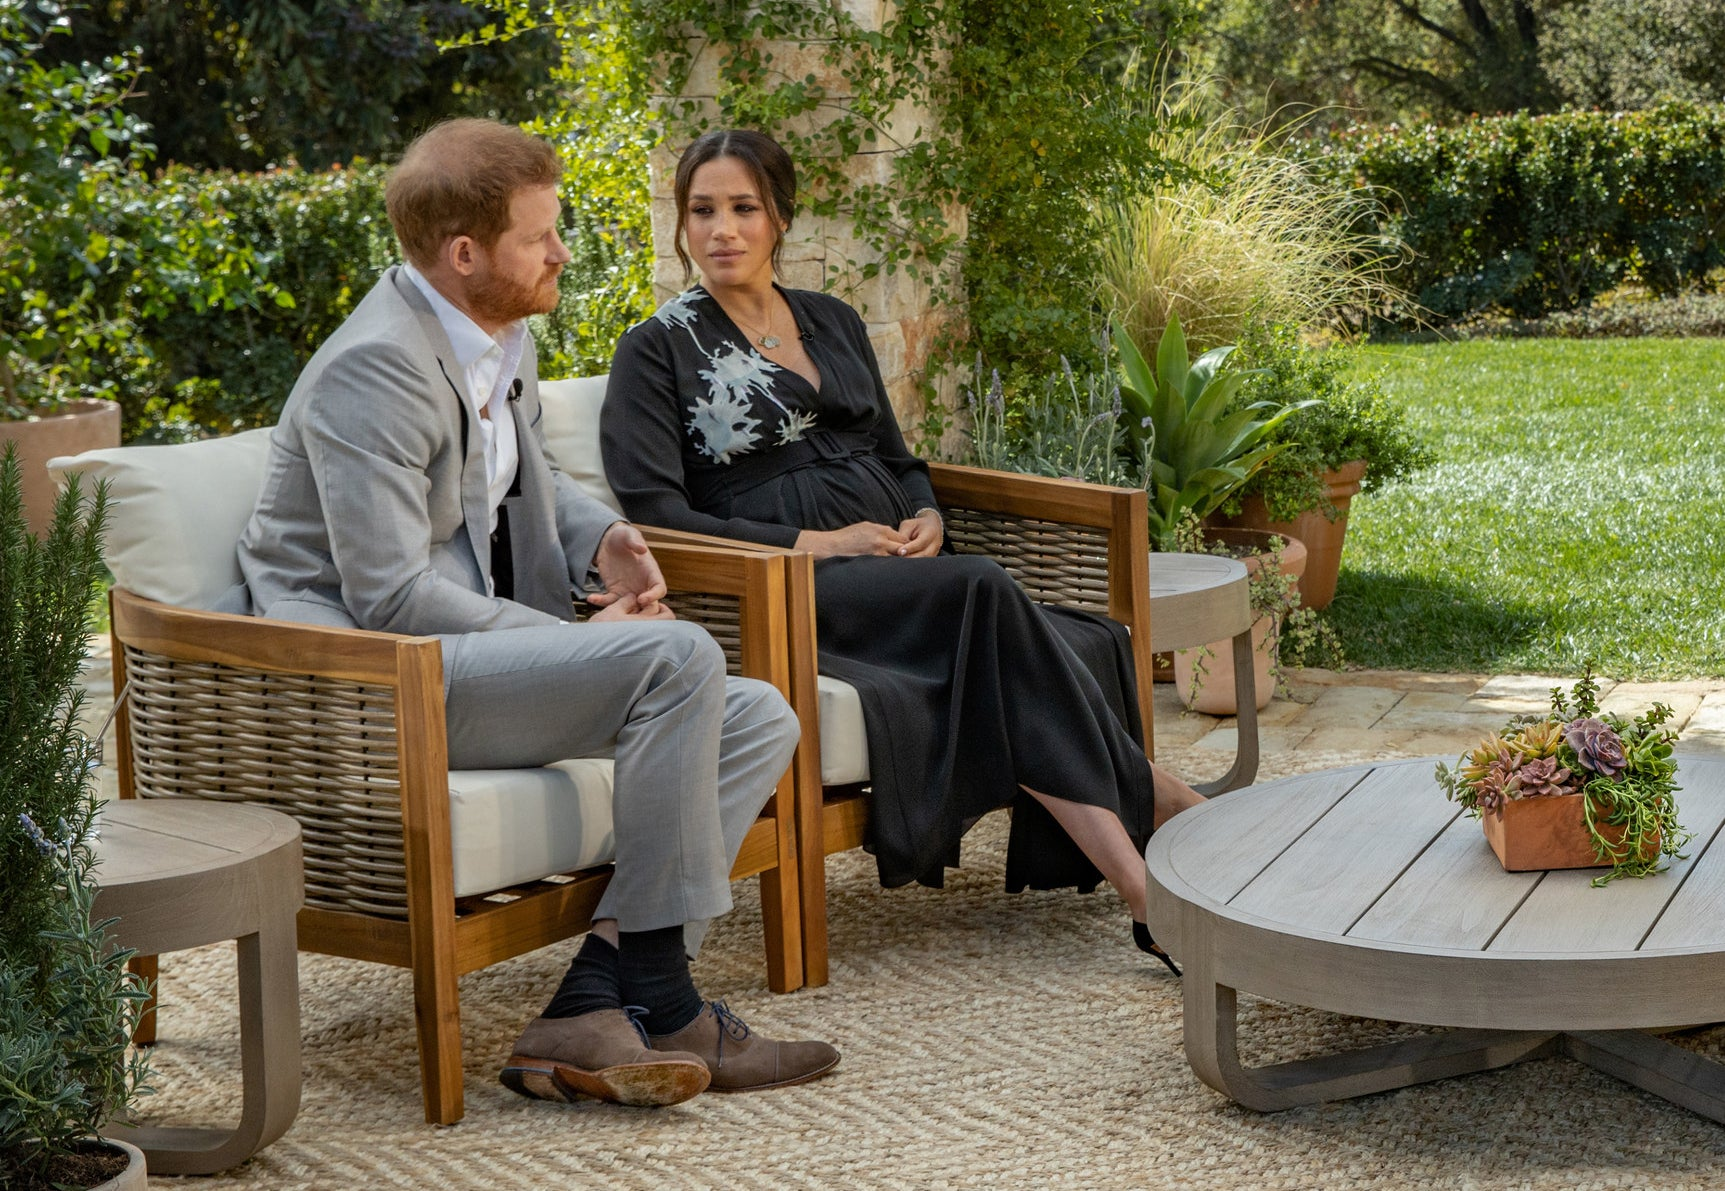 Meghan looks at Harry during the Oprah interview